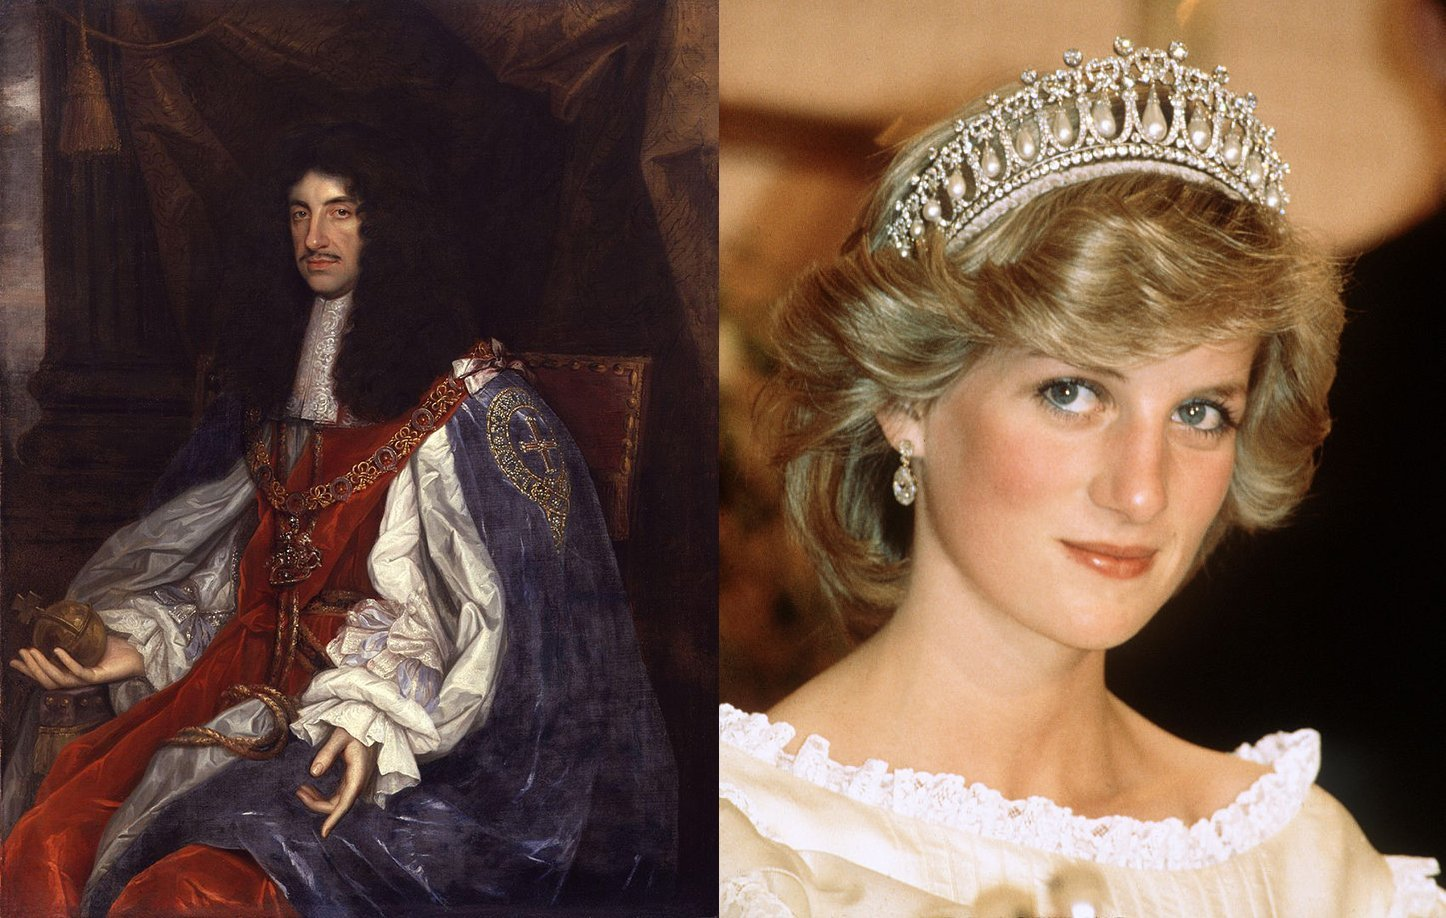 King Charles II and Princess Diana. I Image: Getty Images.